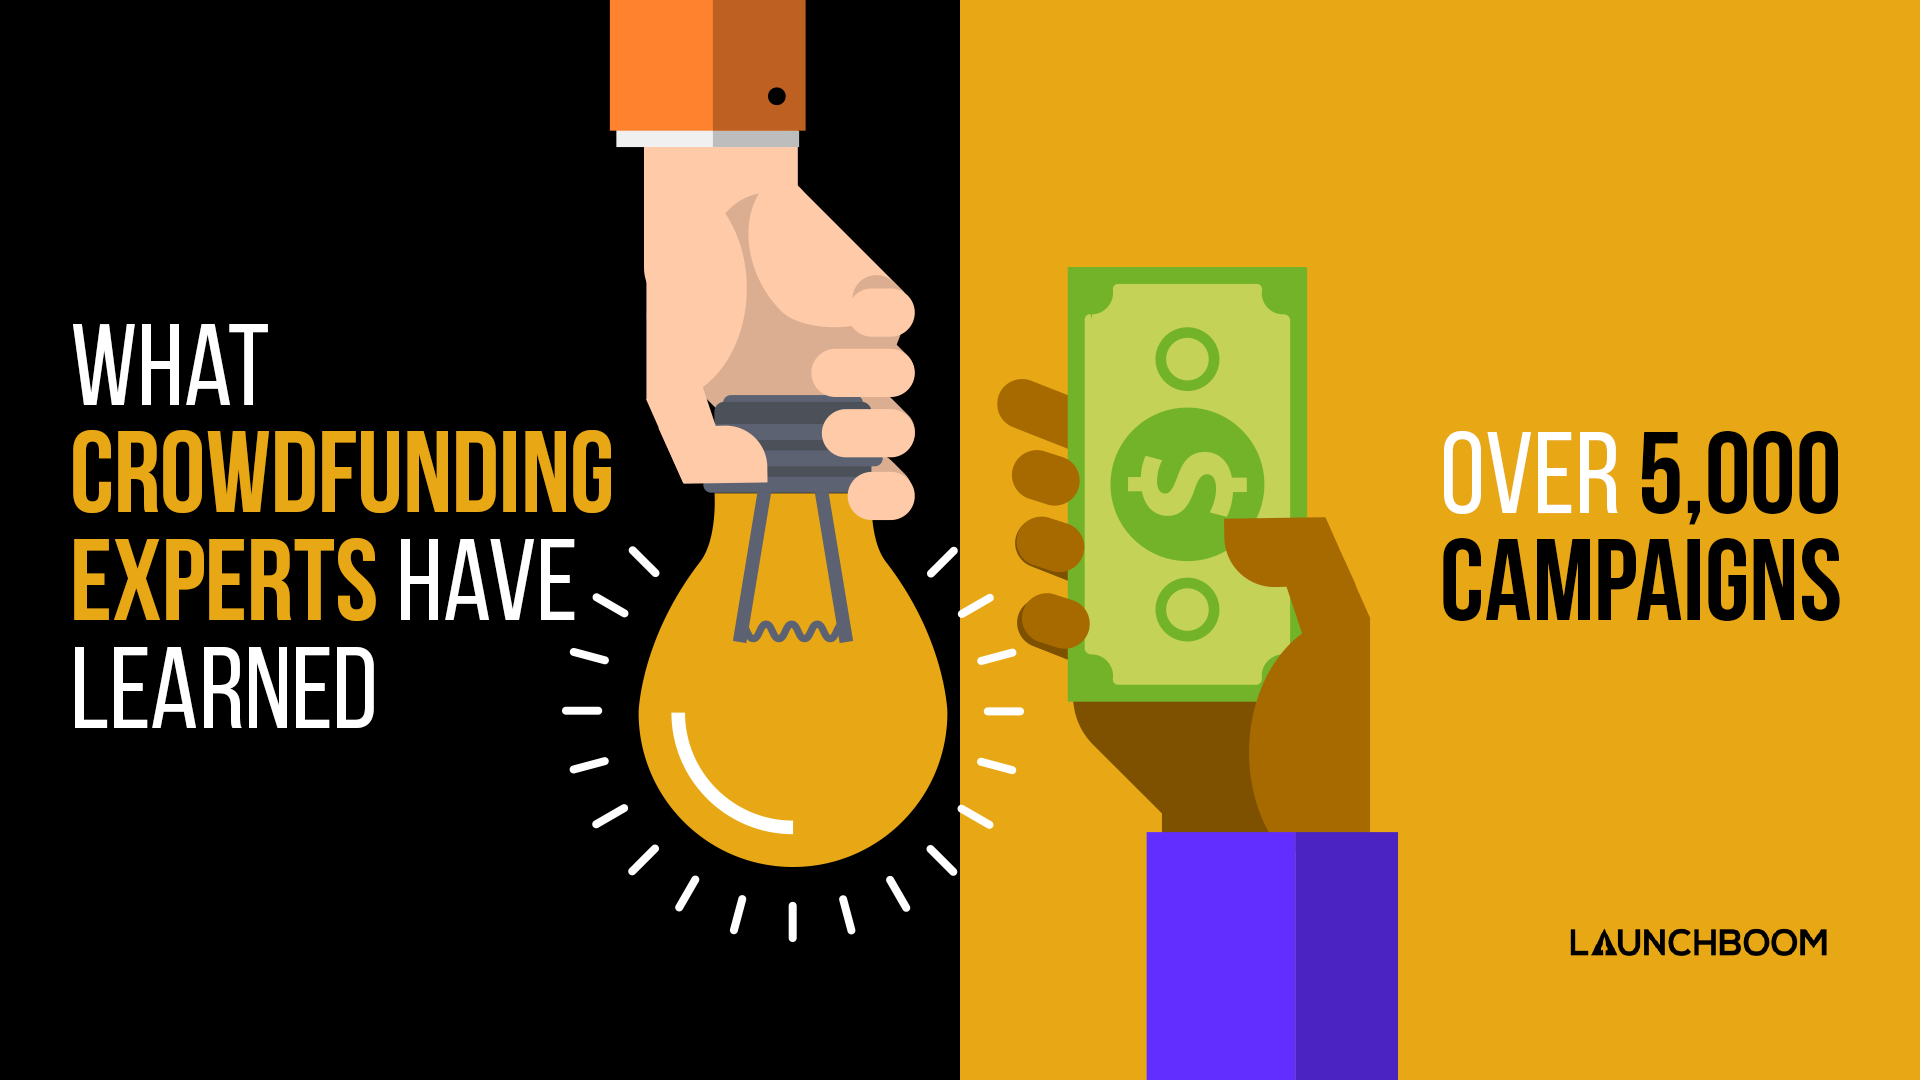 What crowdfunding experts have learned over 5,000 campaigns